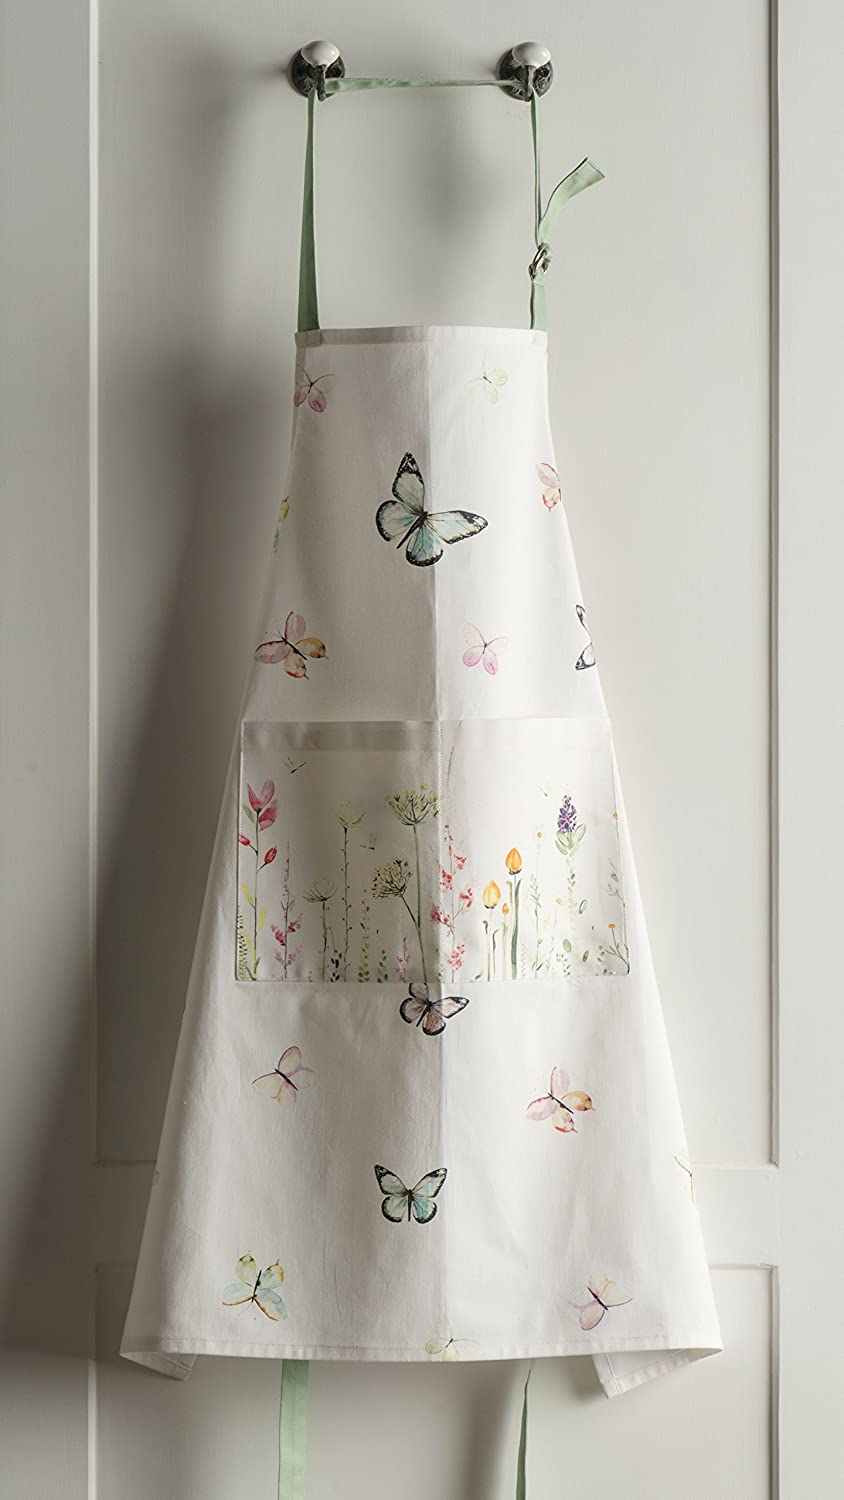 inch Maison d Hermine Birdies On Wire 100/% Cotton Apron with an Adjustable Neck /& Two Side Pockets inch by 31.50 27.50